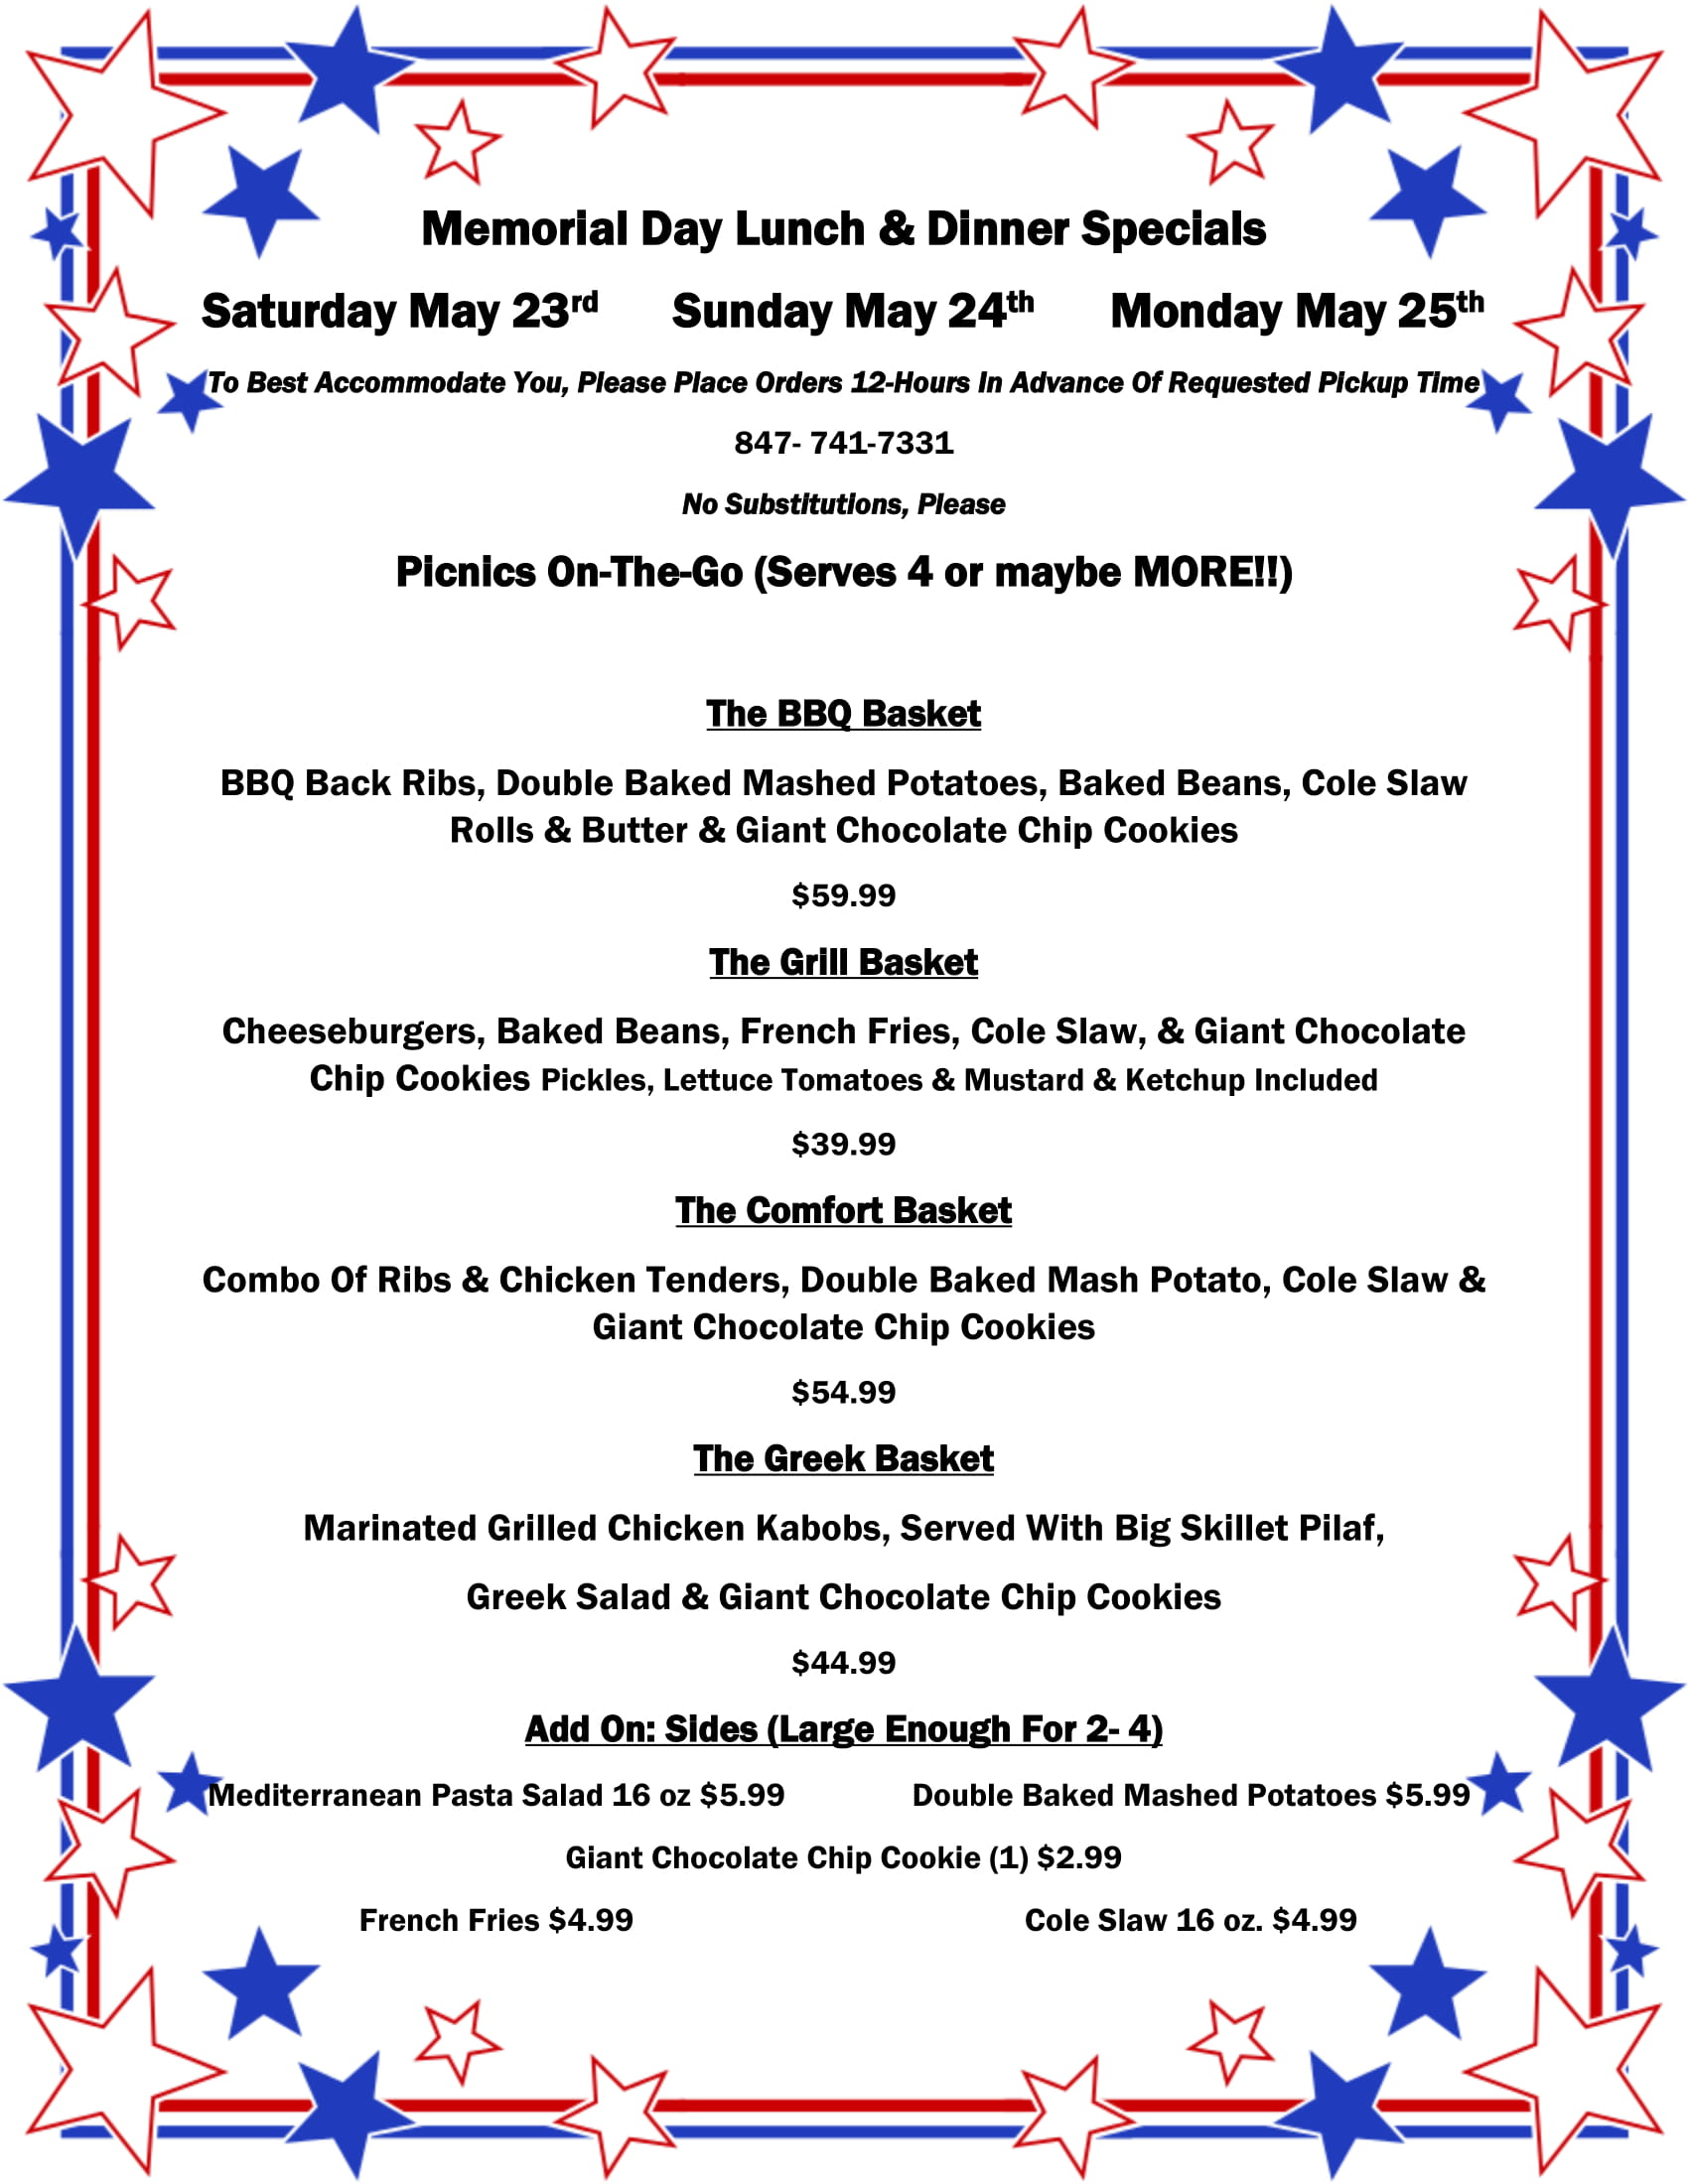 Memorial Day Lunch & Dinner Specials